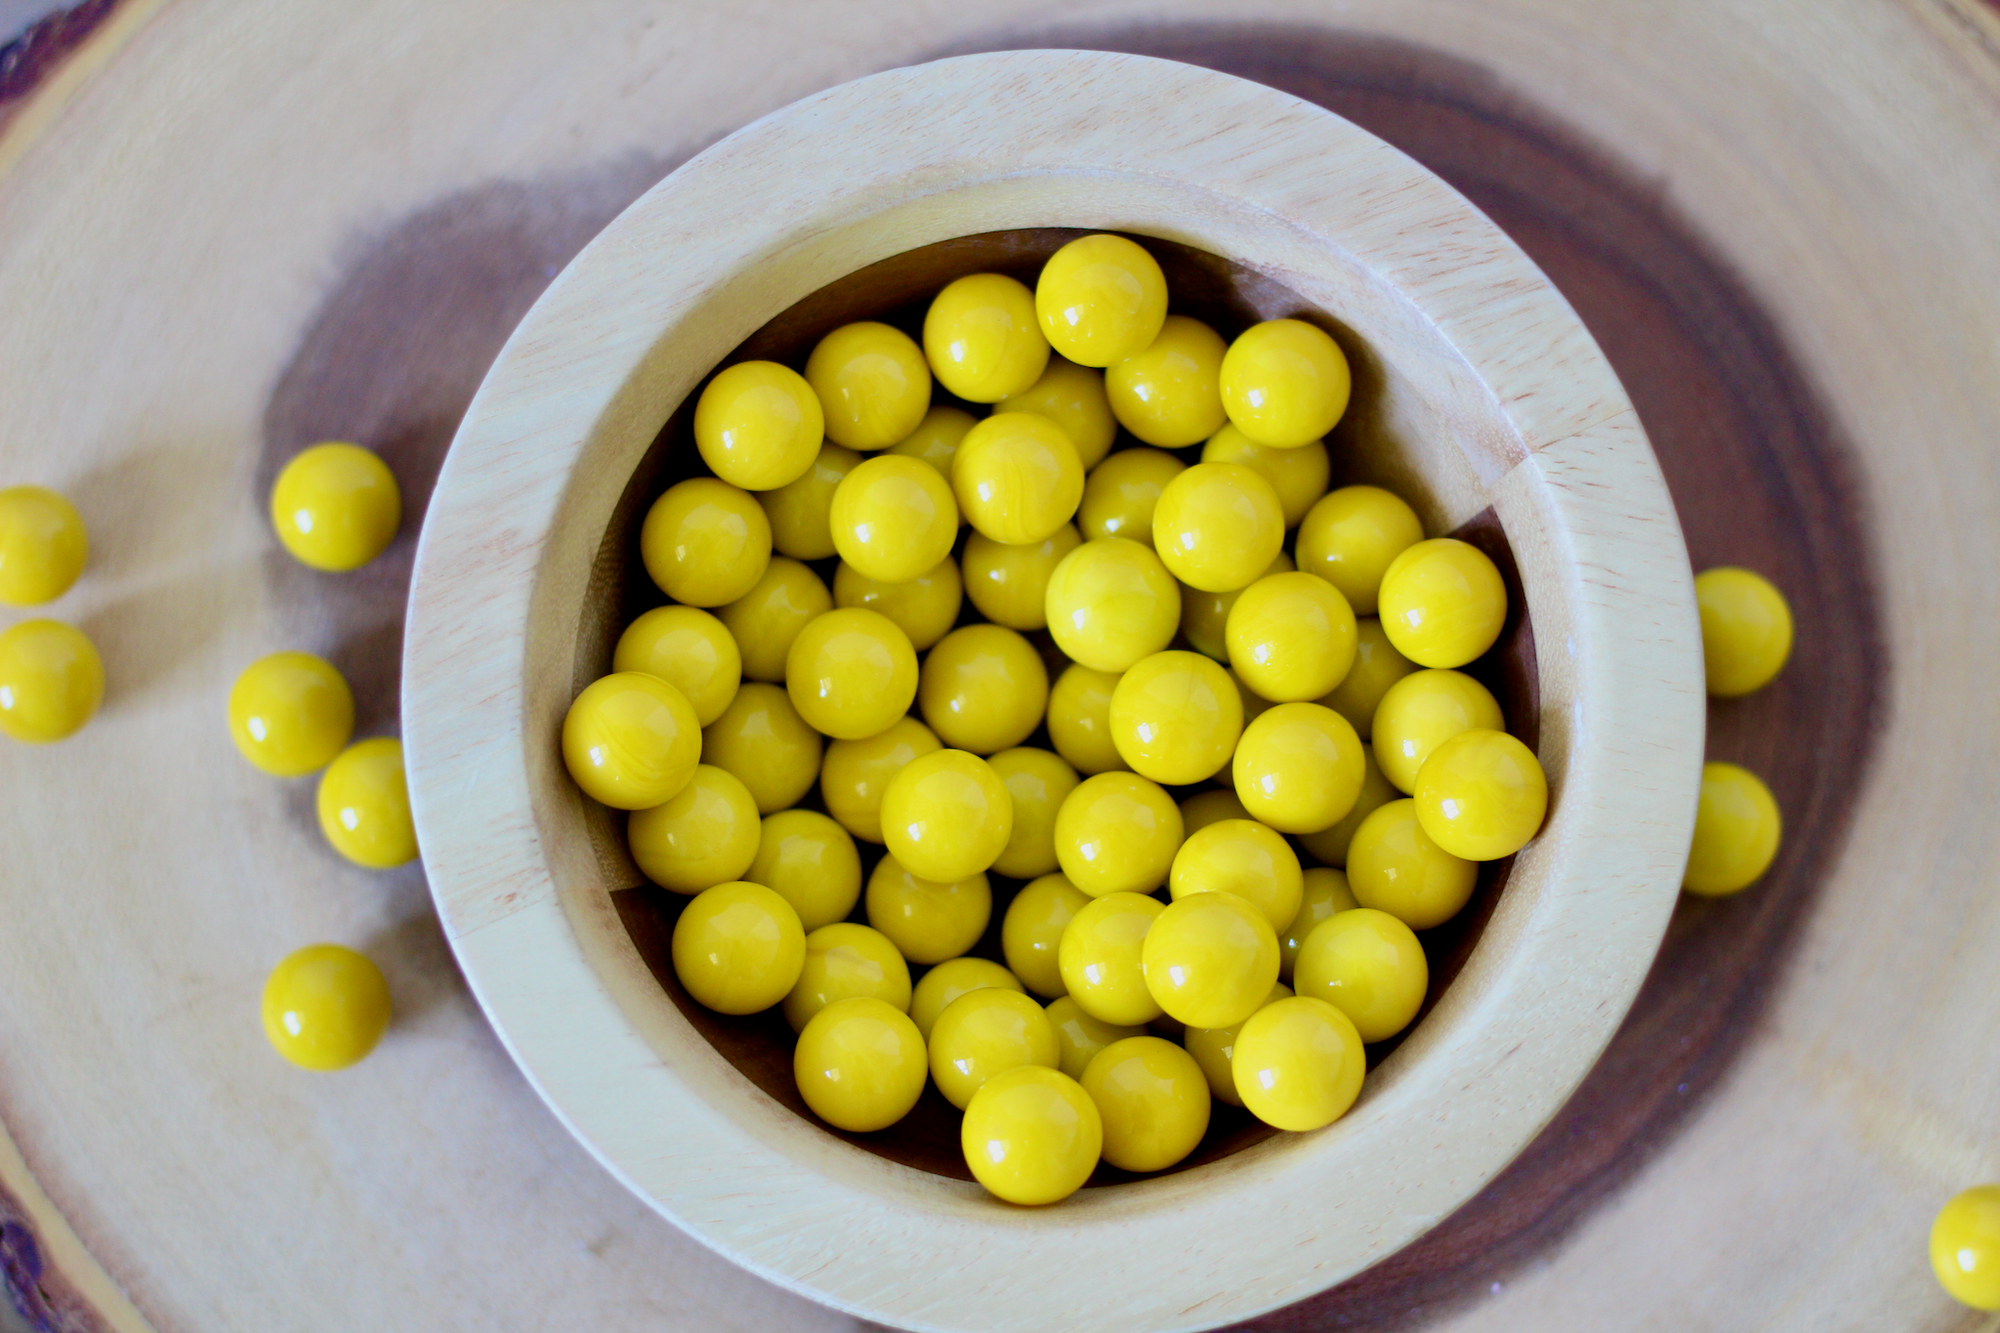 Yellow marble manipulatives for montessori homeschooling and sensory play.